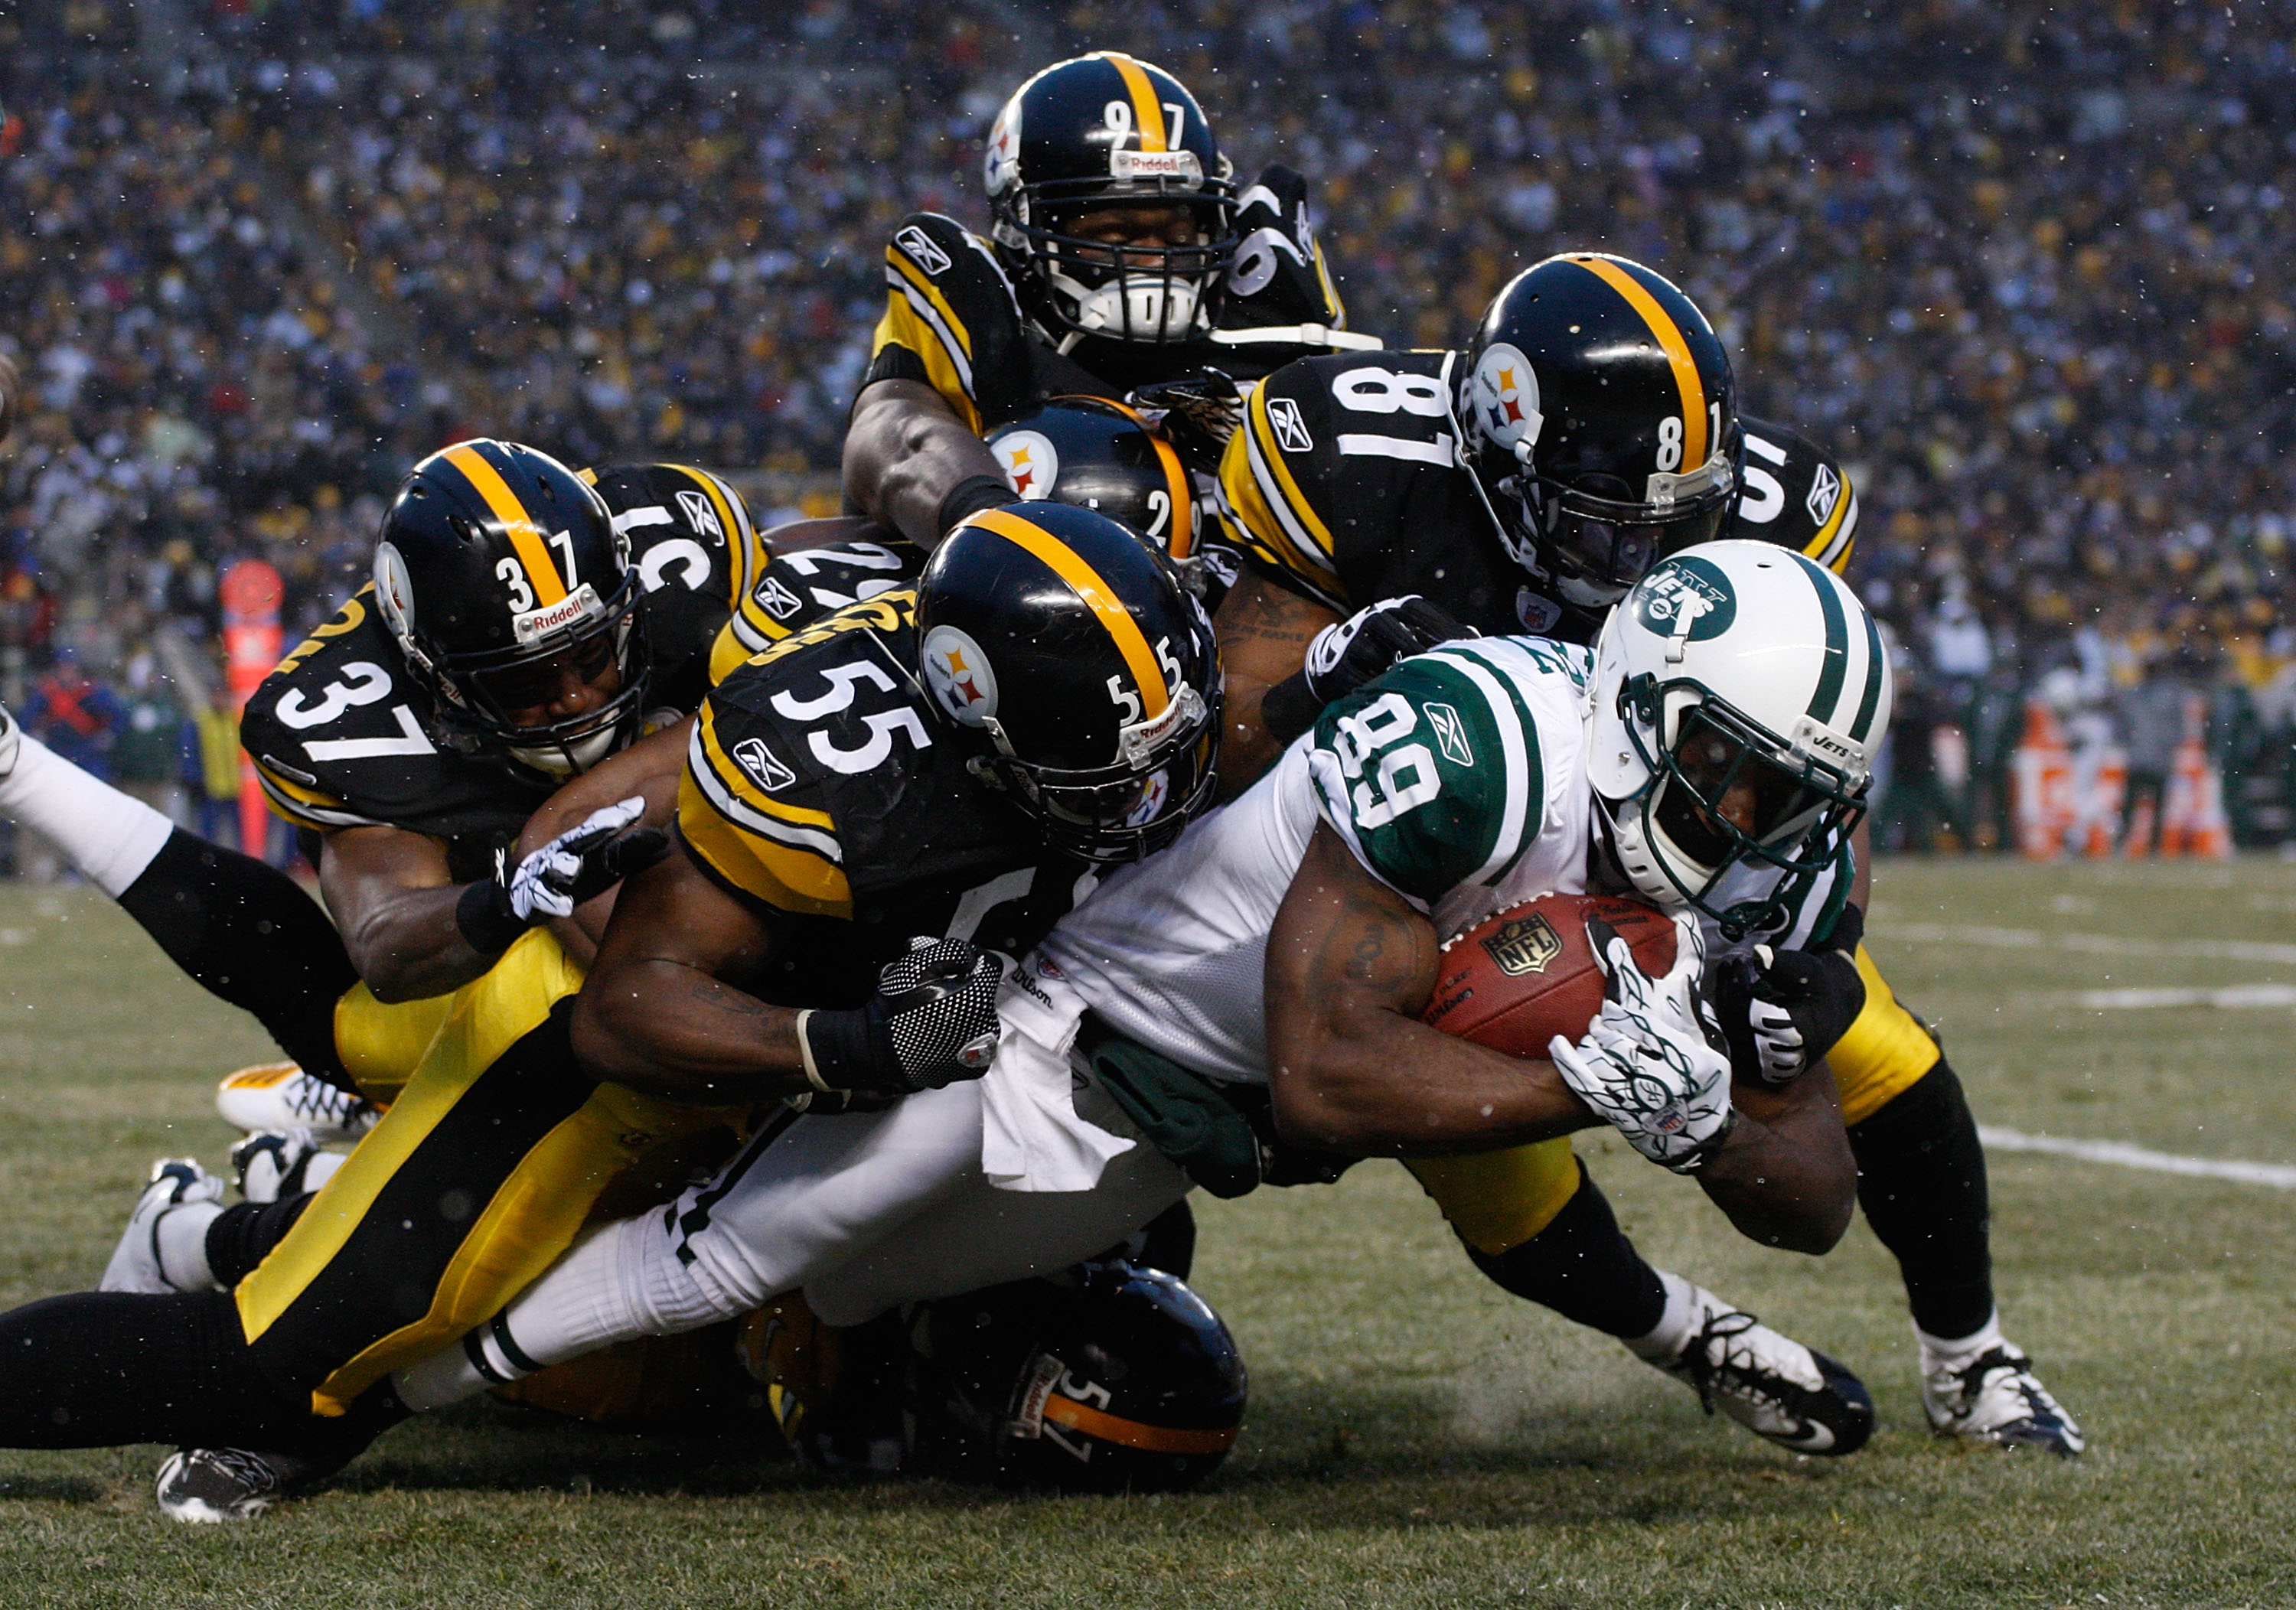 Steel Curtain D: Pittsburgh will have renewed motivation to finish the season strong.